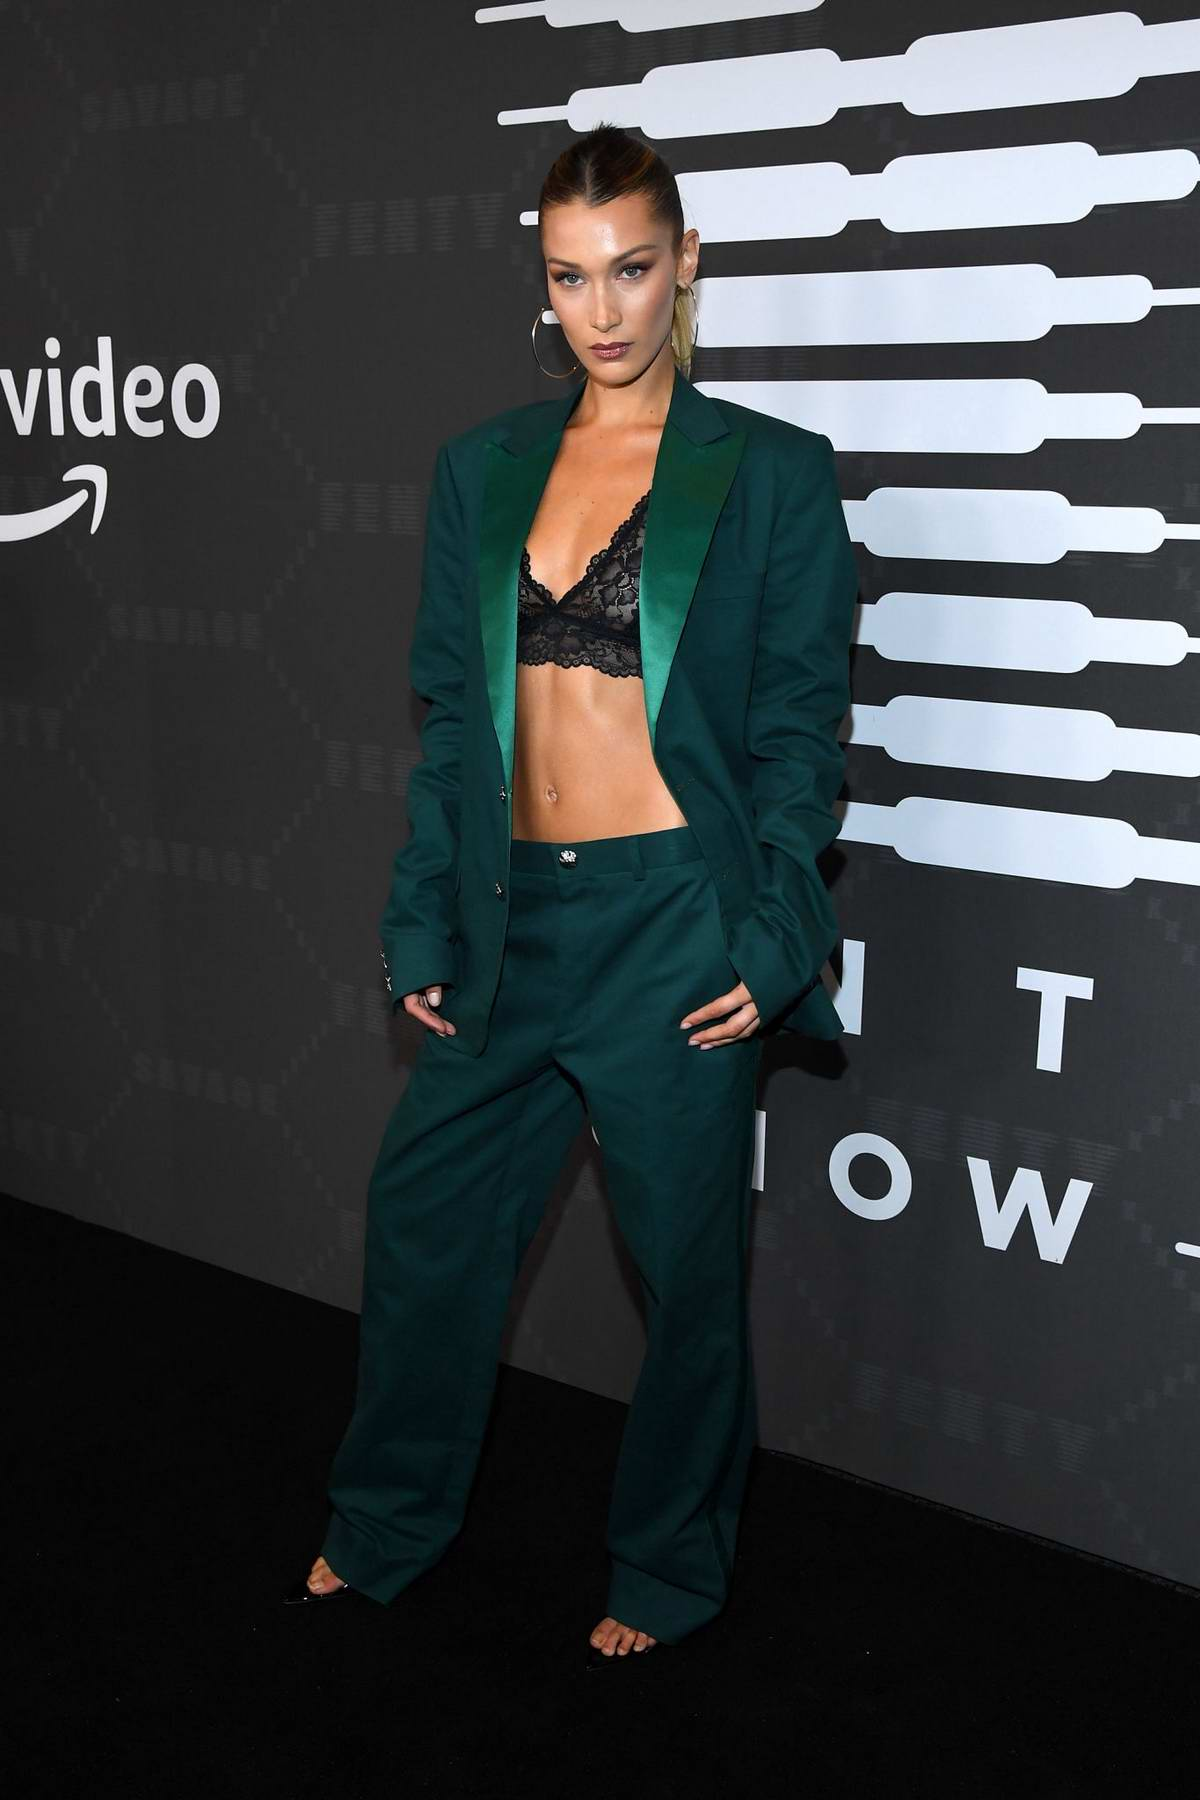 Bella Hadid attends Savage X Fenty Show during New York Fashion Week at Barclays Center in Brooklyn, New York City